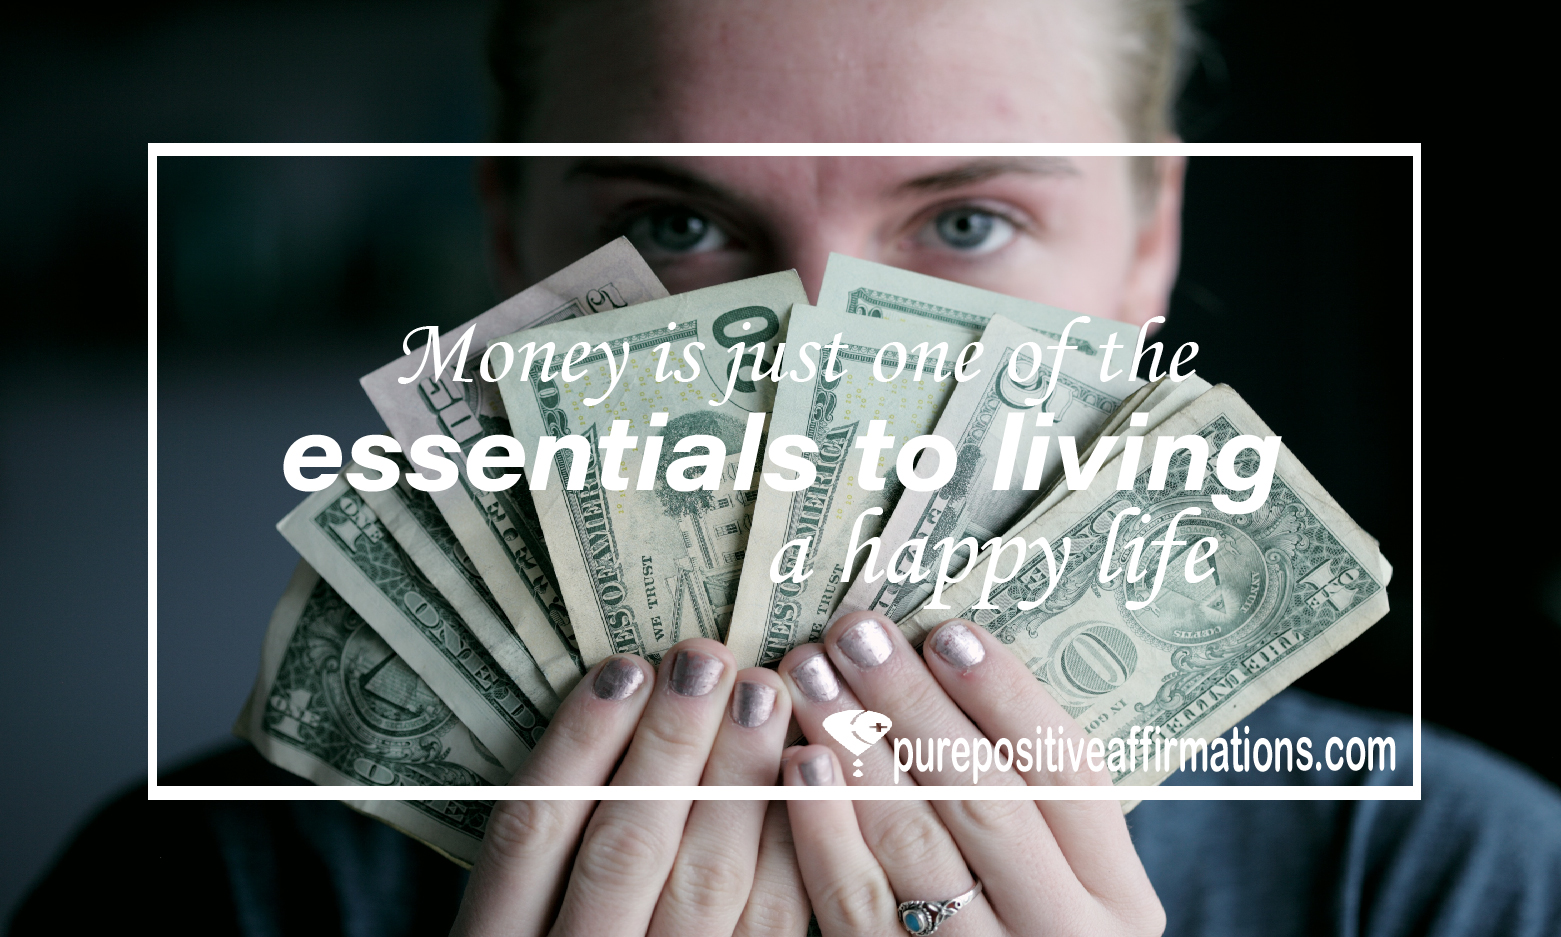 Money is just one of the essentials to living a happy life